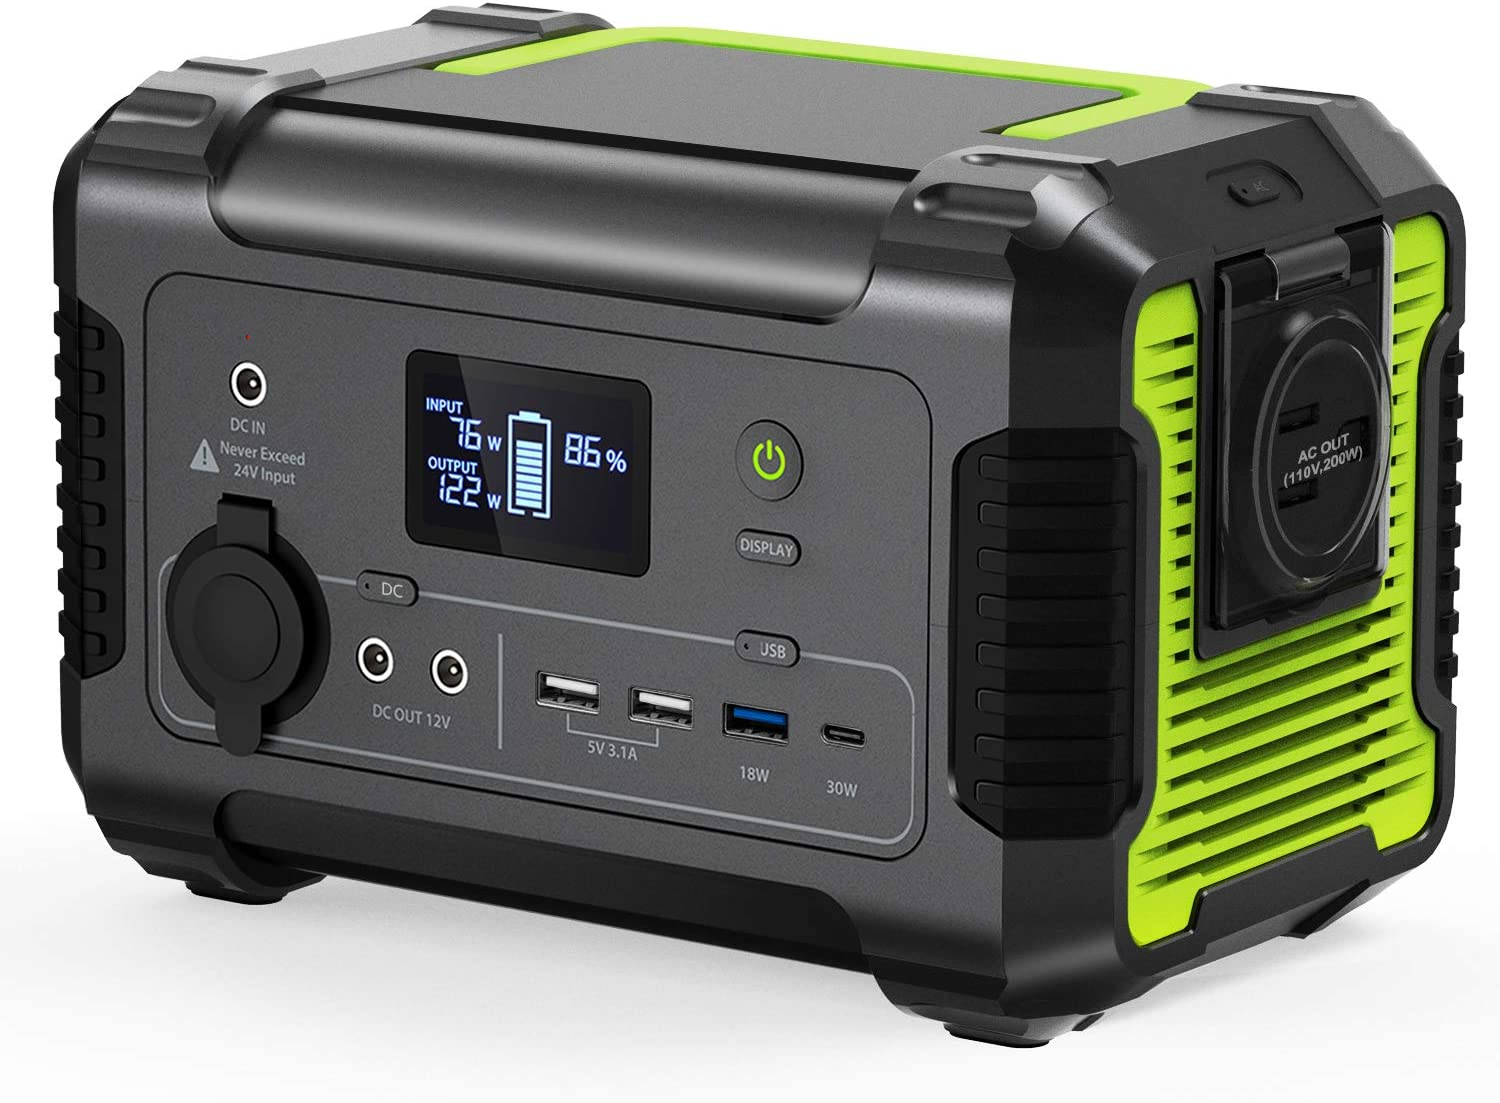 Portable Power Station, 230Wh/62400mAh Camping Generator Emergency Backup Battery, 110V/ 200W (300W Peak) US Standard AC Outlet, QC 3.0 USB,Type-C PD Port, 12V DC for Outdoor Camping Power Supply